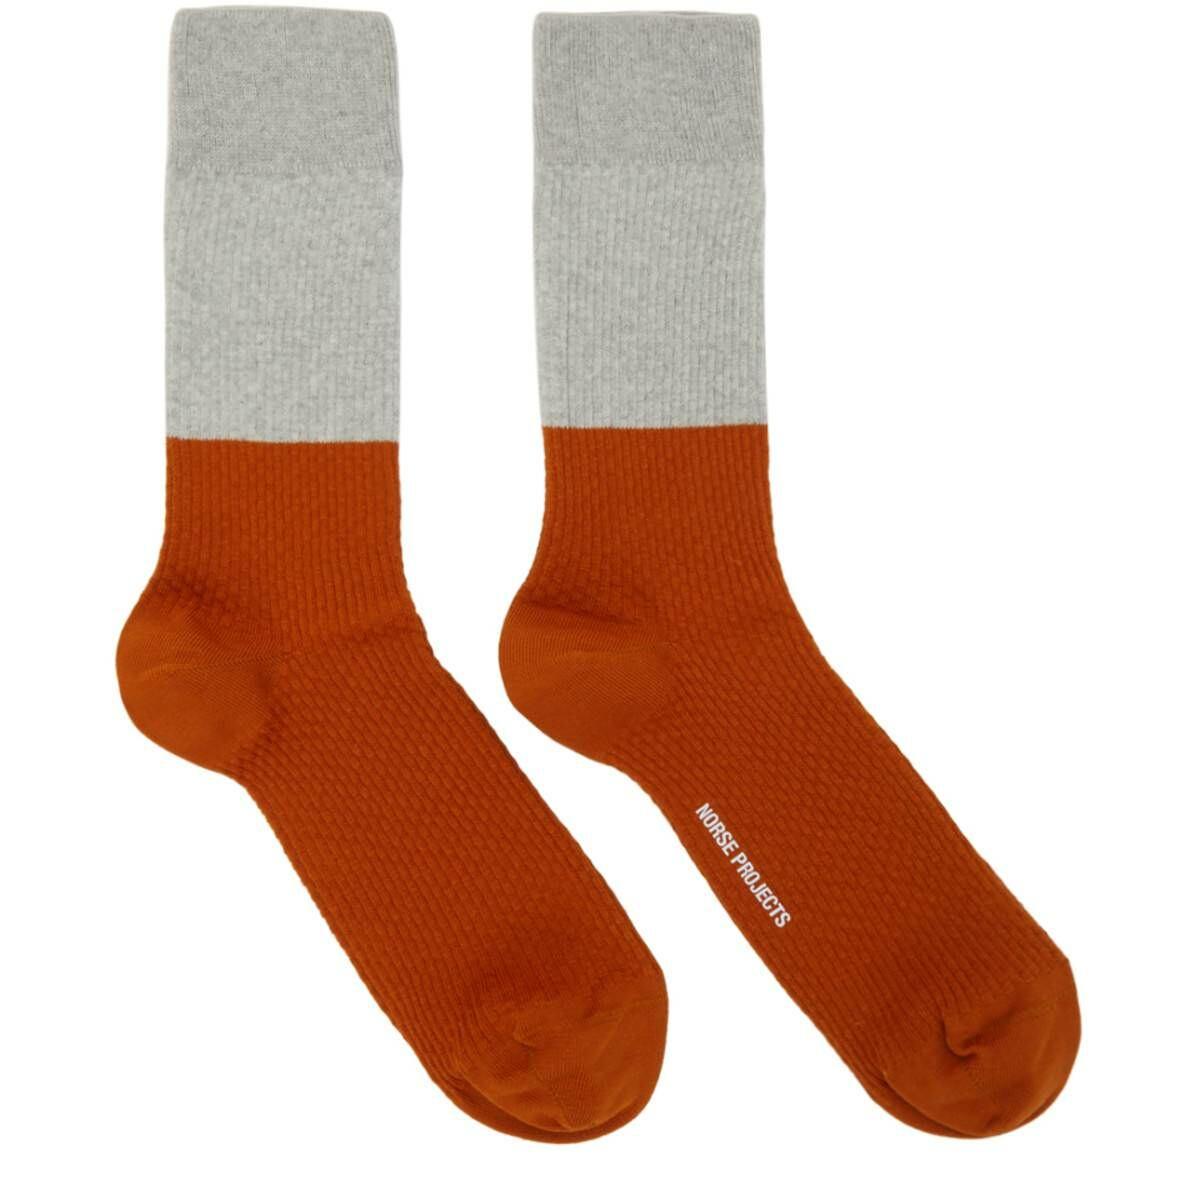 Norse Projects Grey and Orange Colorblock Bjarki Socks Ssense USA MEN Men ACCESSORIES Mens SOCKS